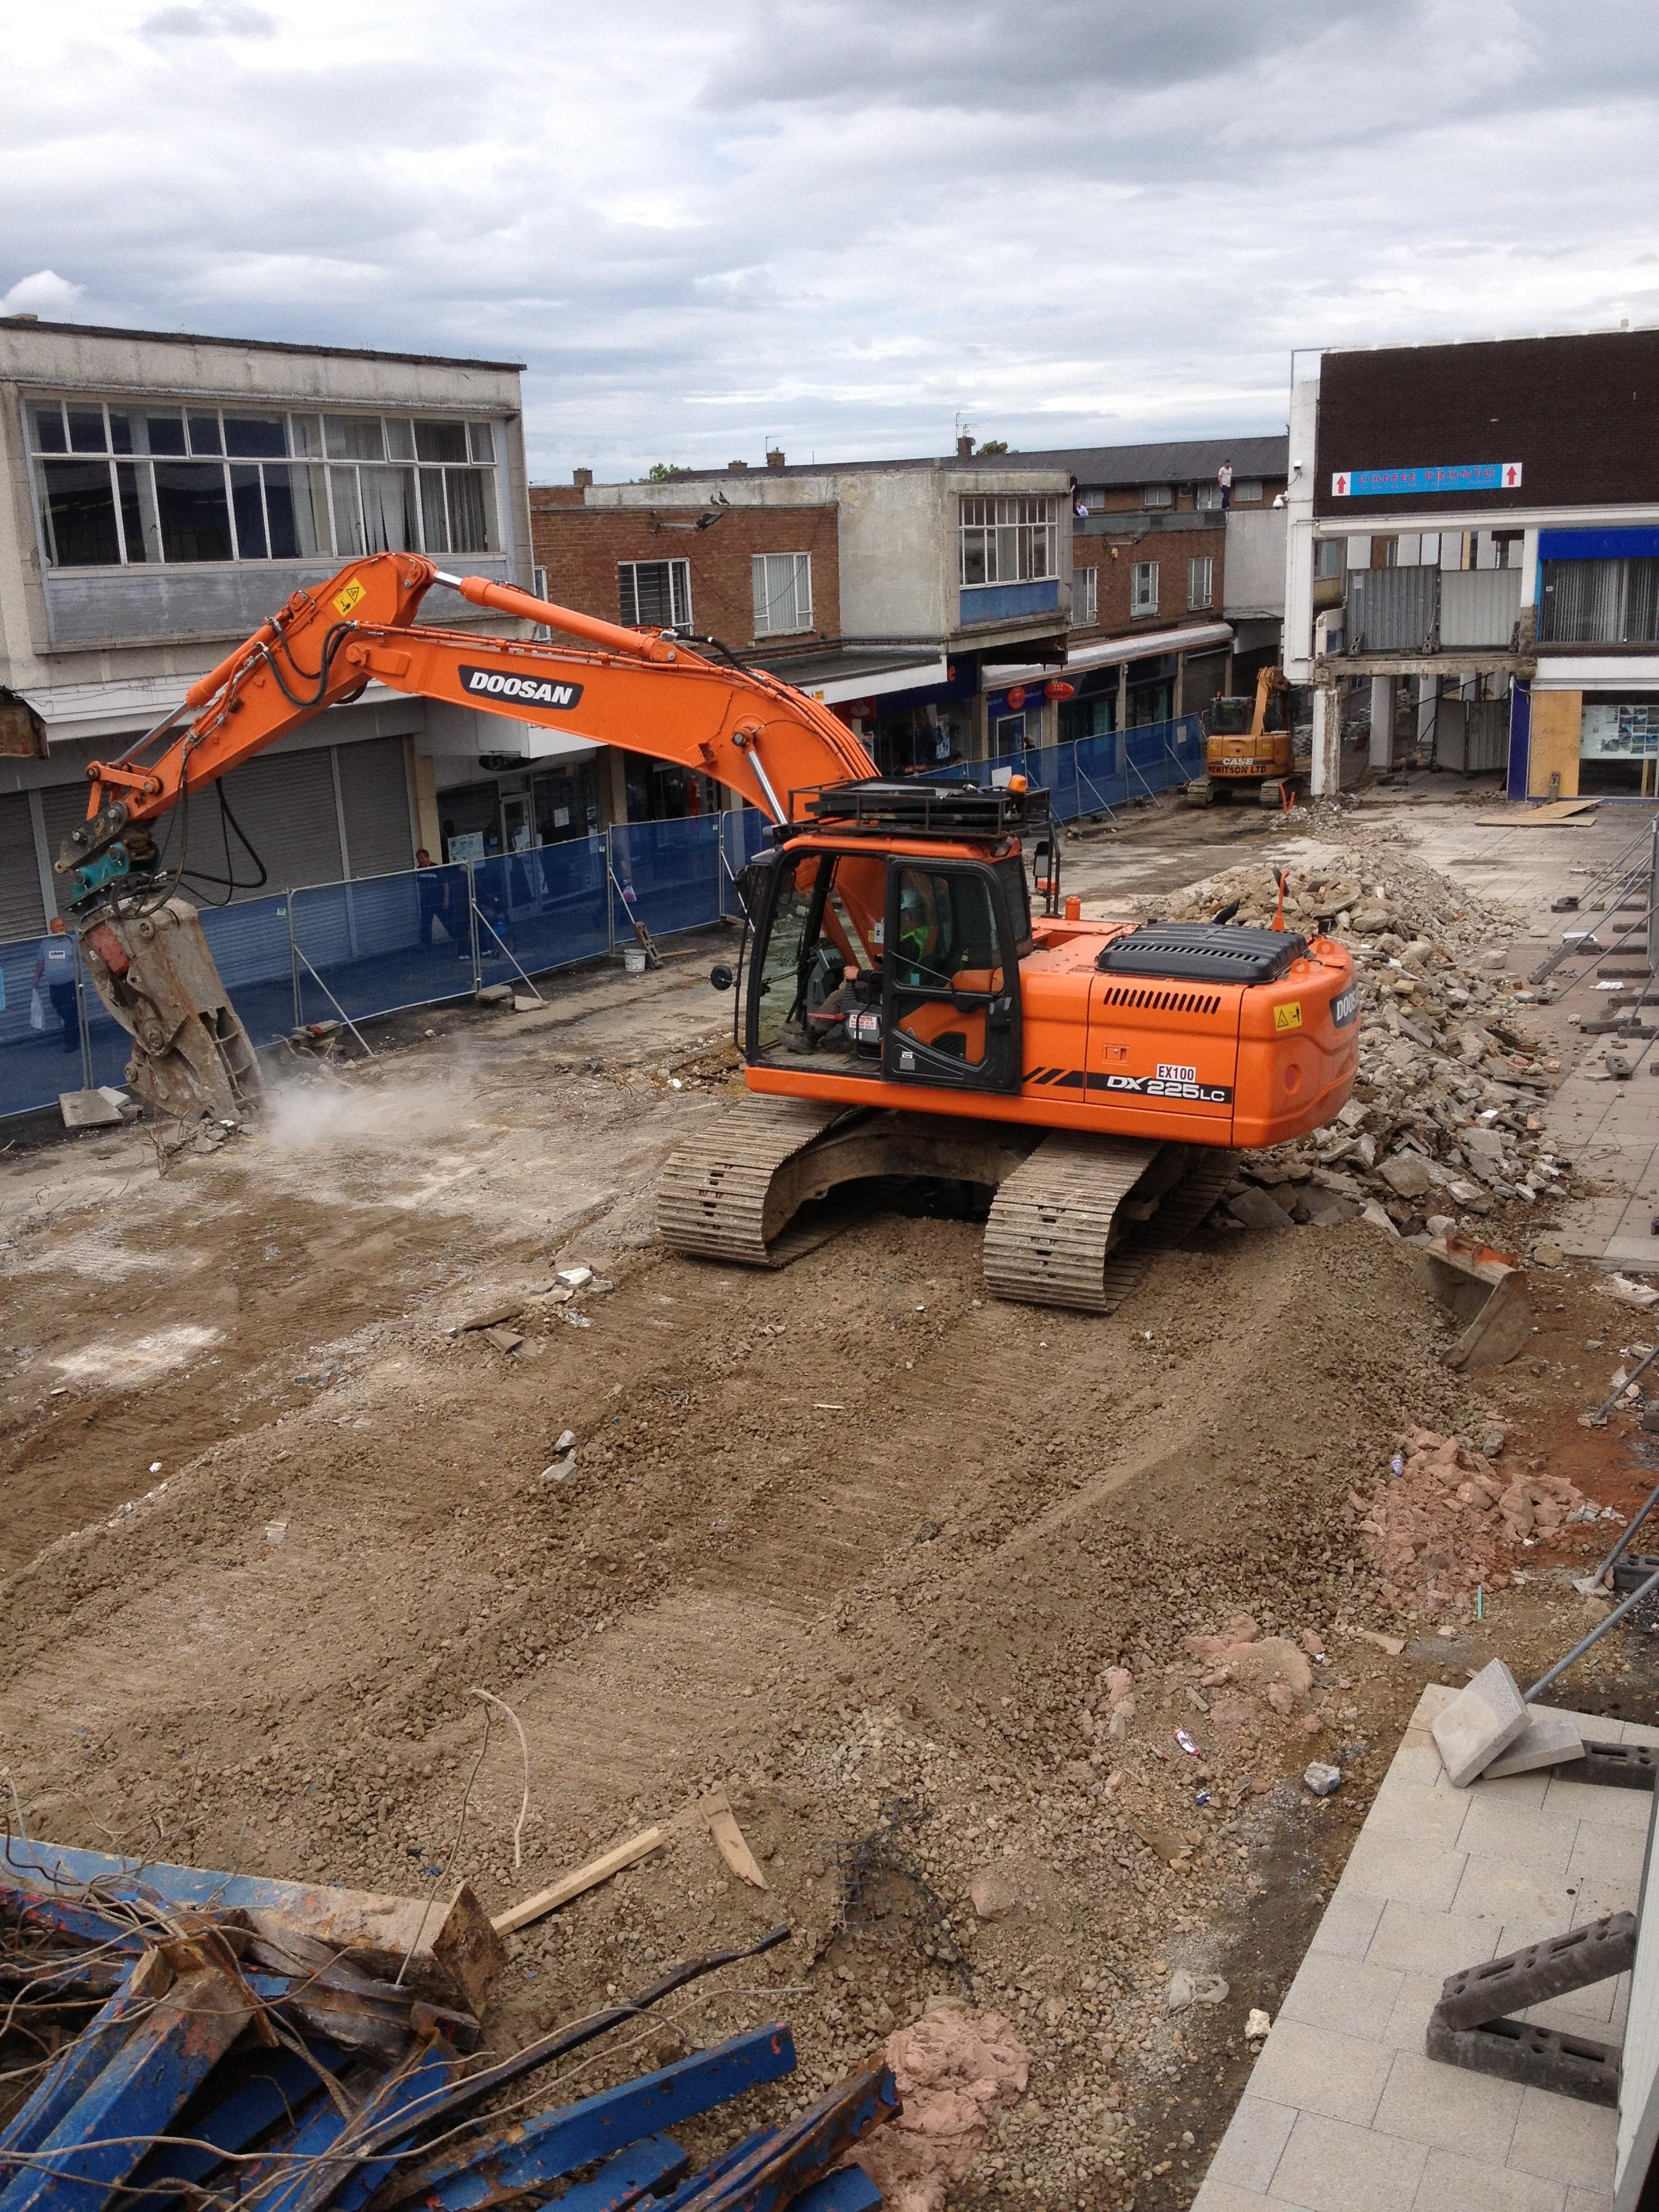 The concrete ramp in Newton  Aycliffe town centre was demolished this week